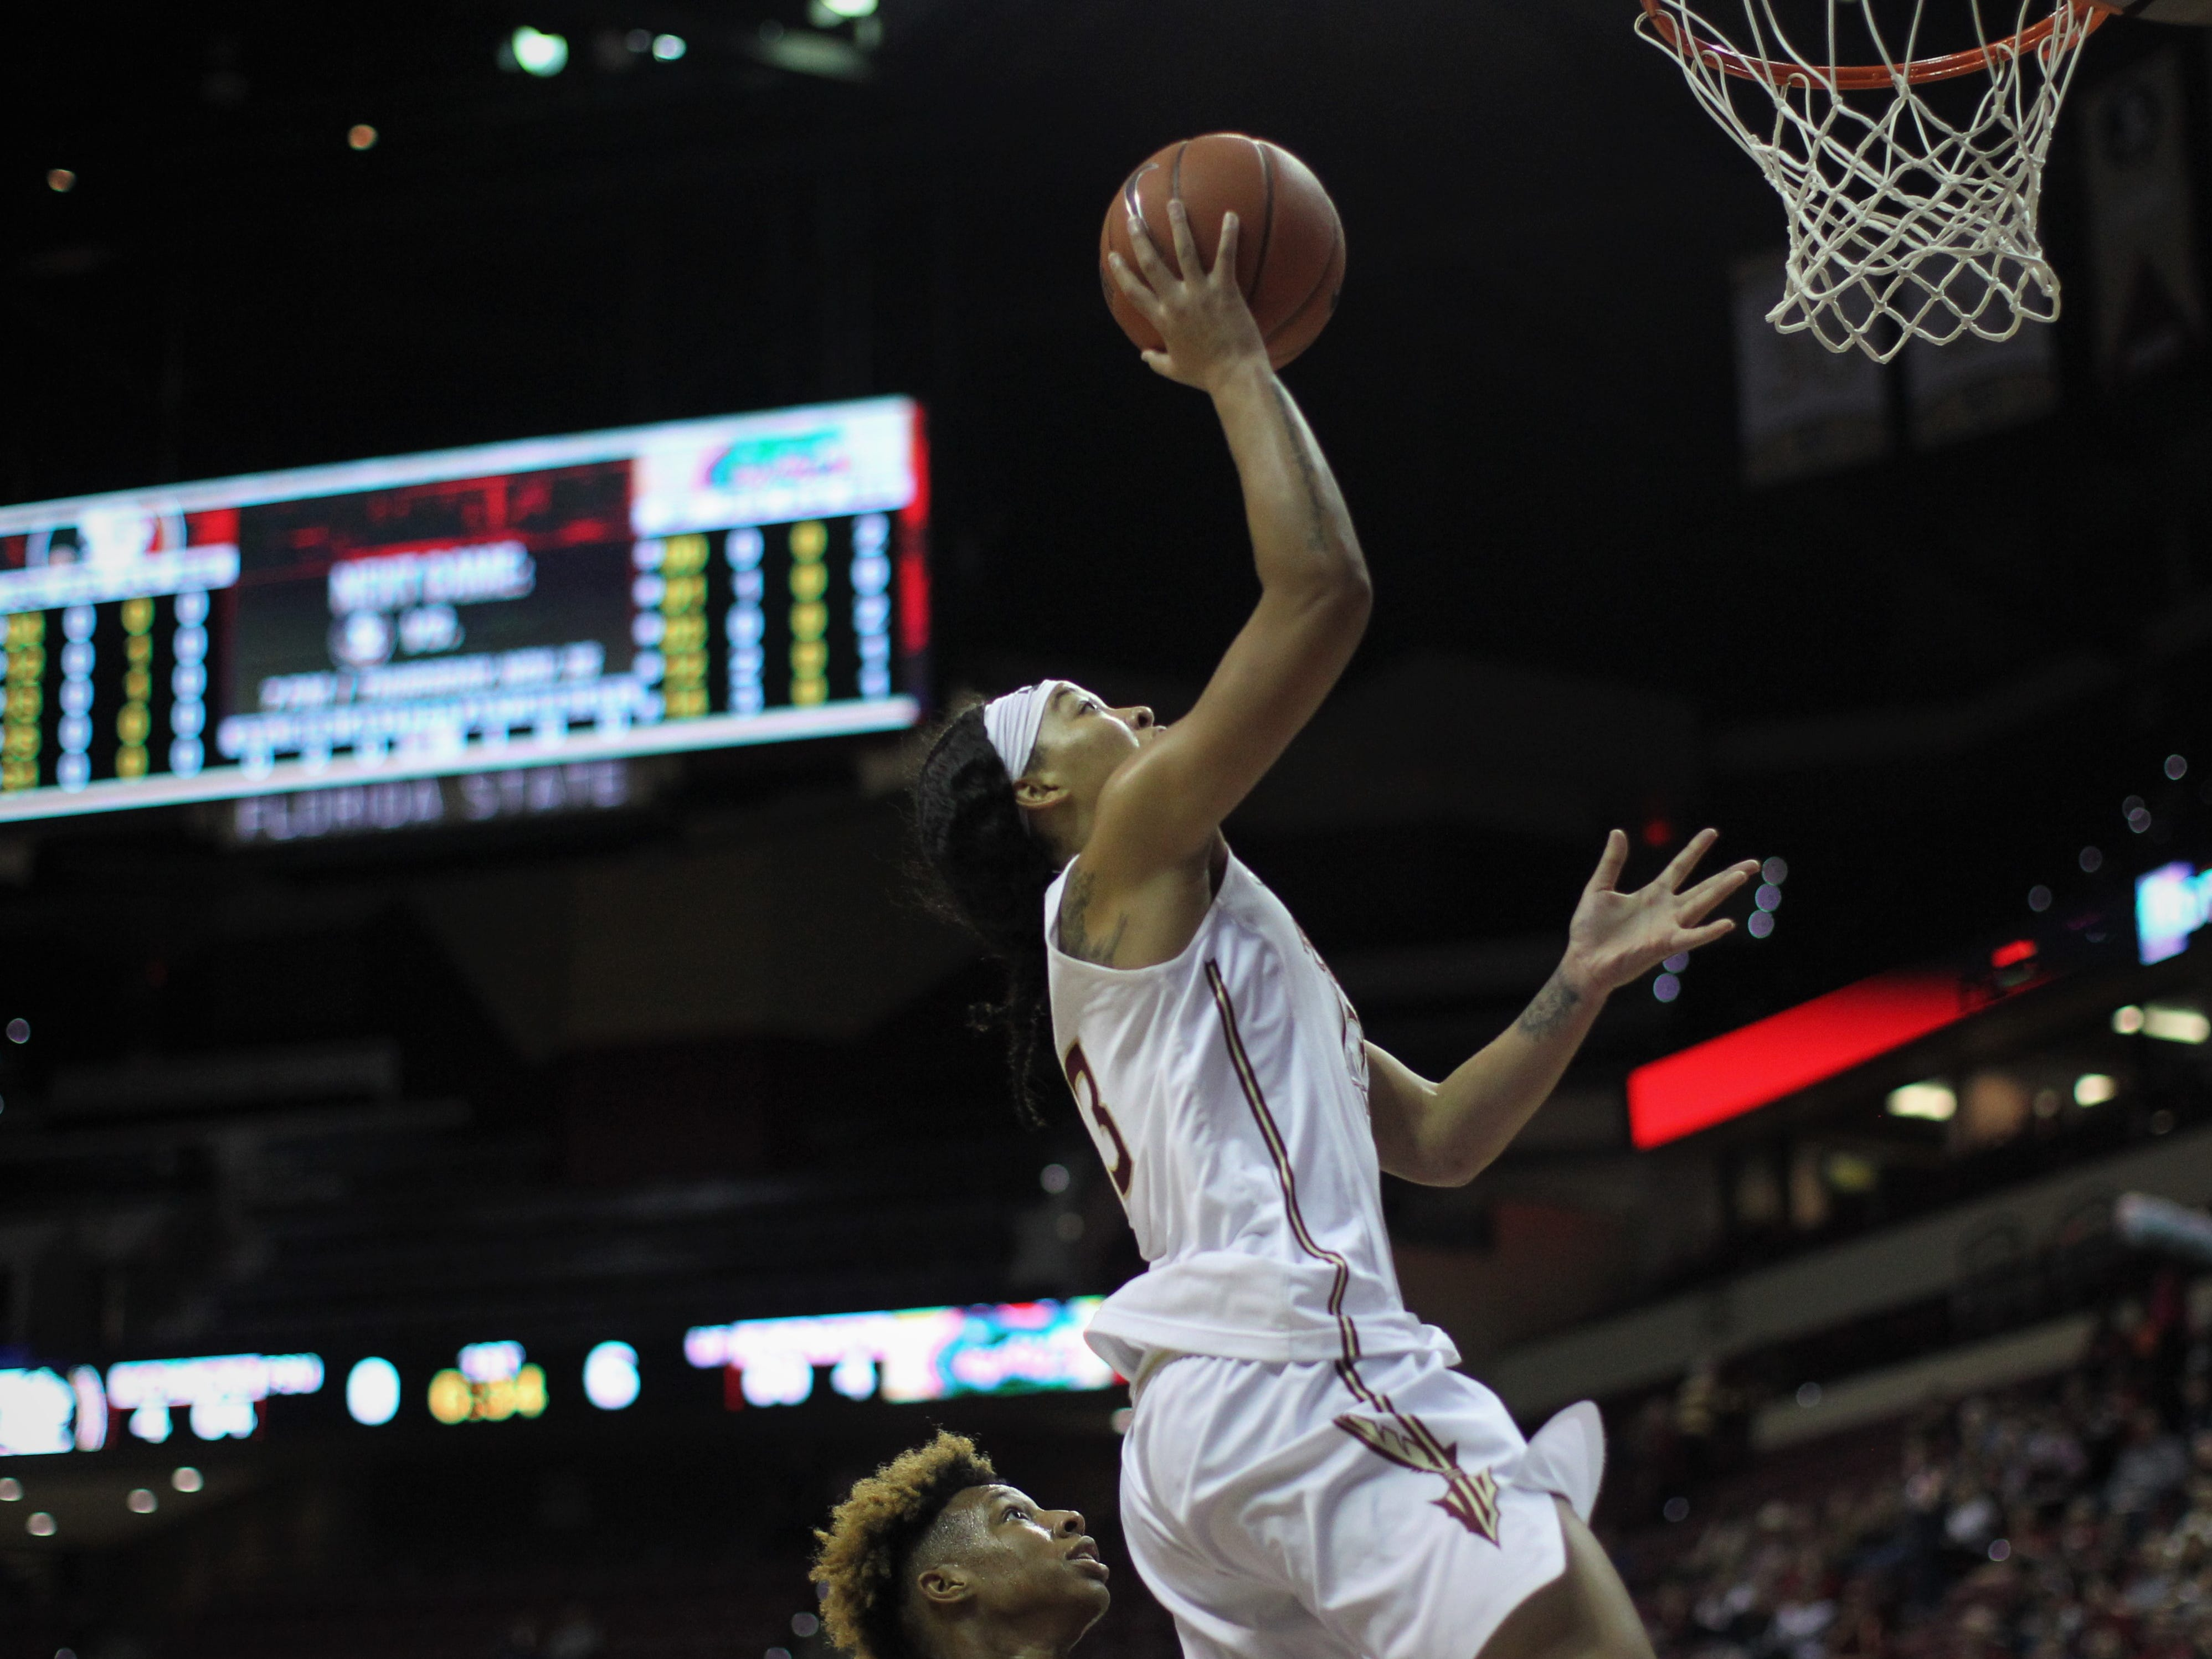 Florida State junior guard Nausia Woolfolk goes in for a layup during the first half of the Seminoles' game against Florida at the Tucker Civic Center on Nov. 11, 2018.